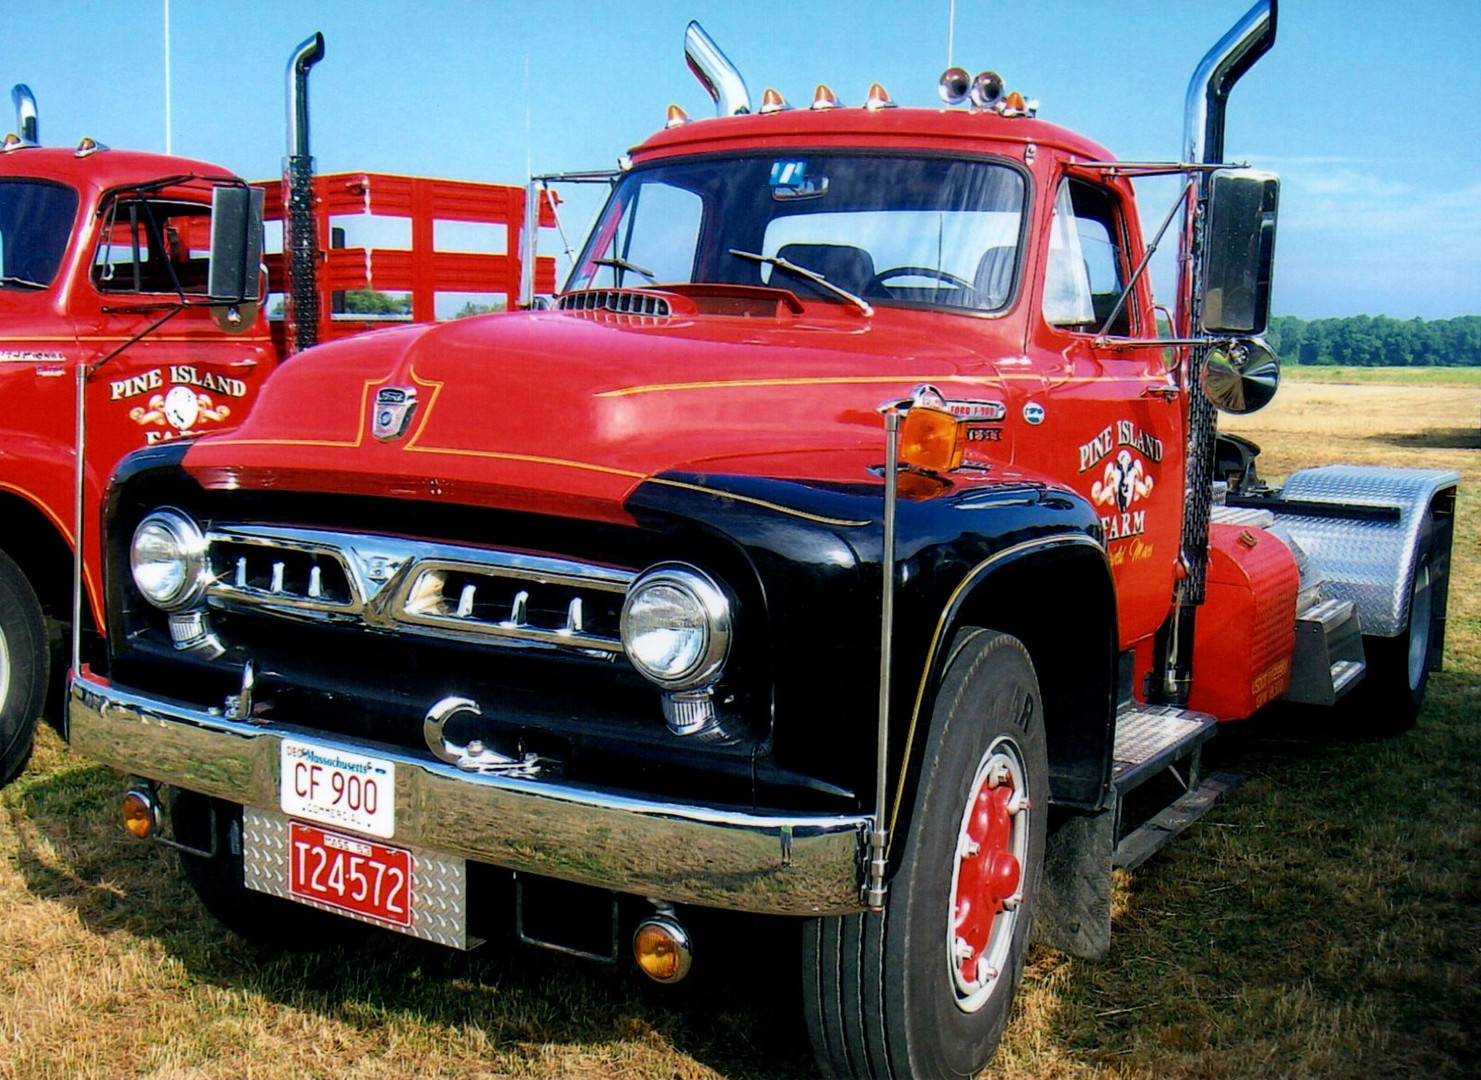 1953 Ford F-900 tractor from Massachusetts